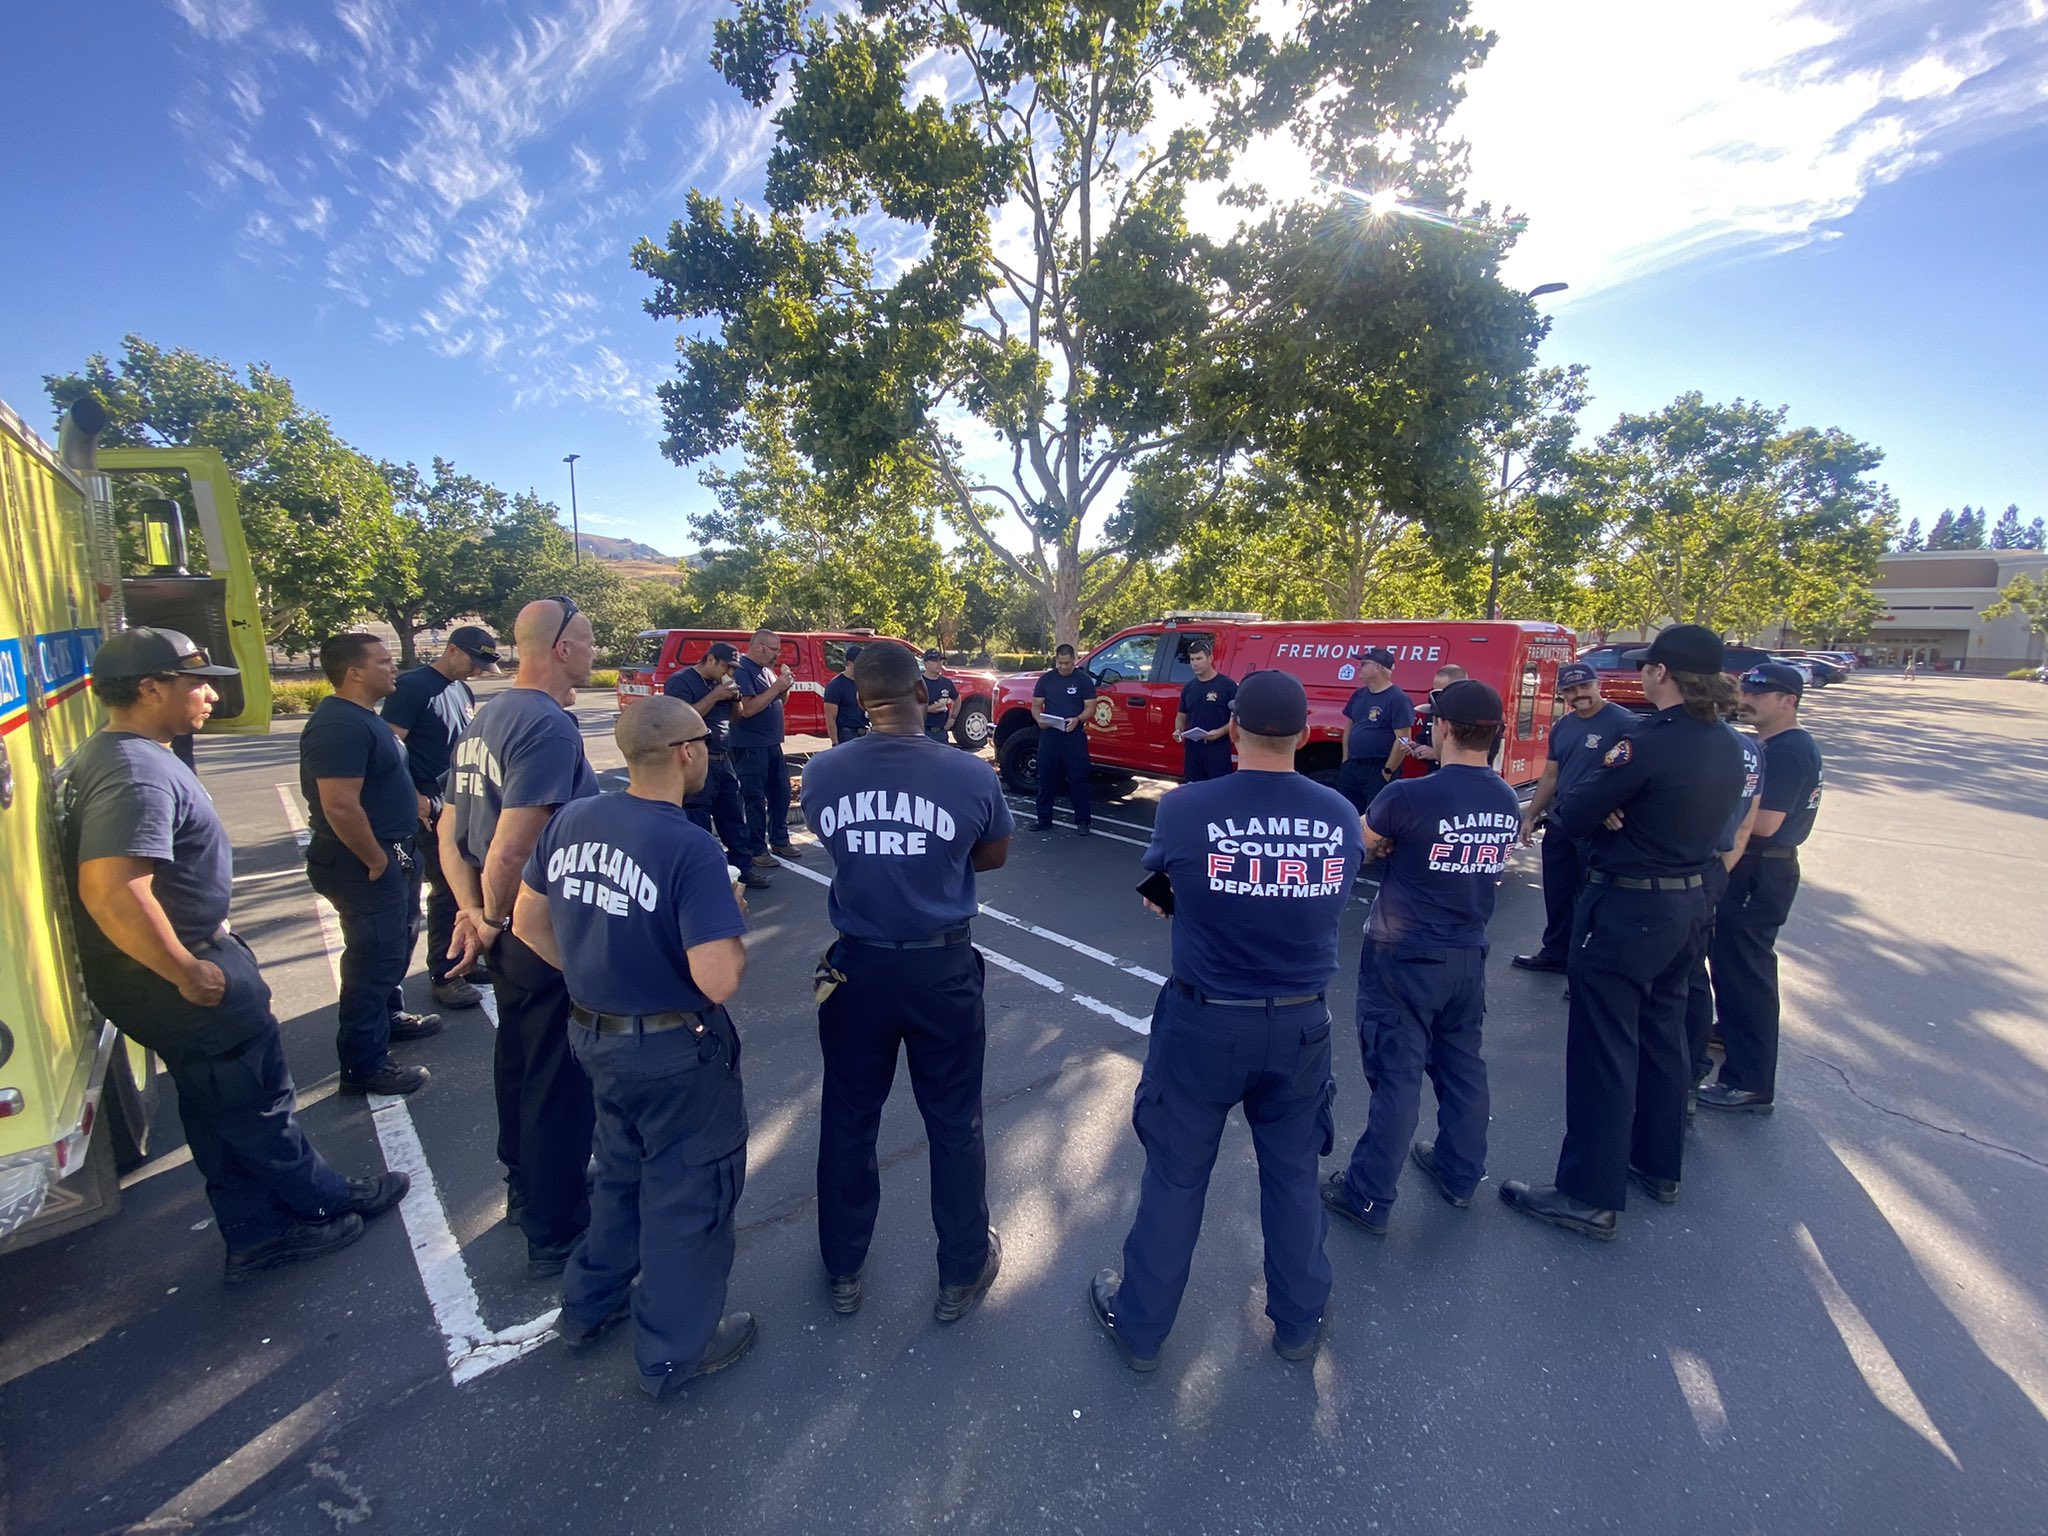 Fire personnel from Fremont, Hayward, Alameda and Oakland in a circle